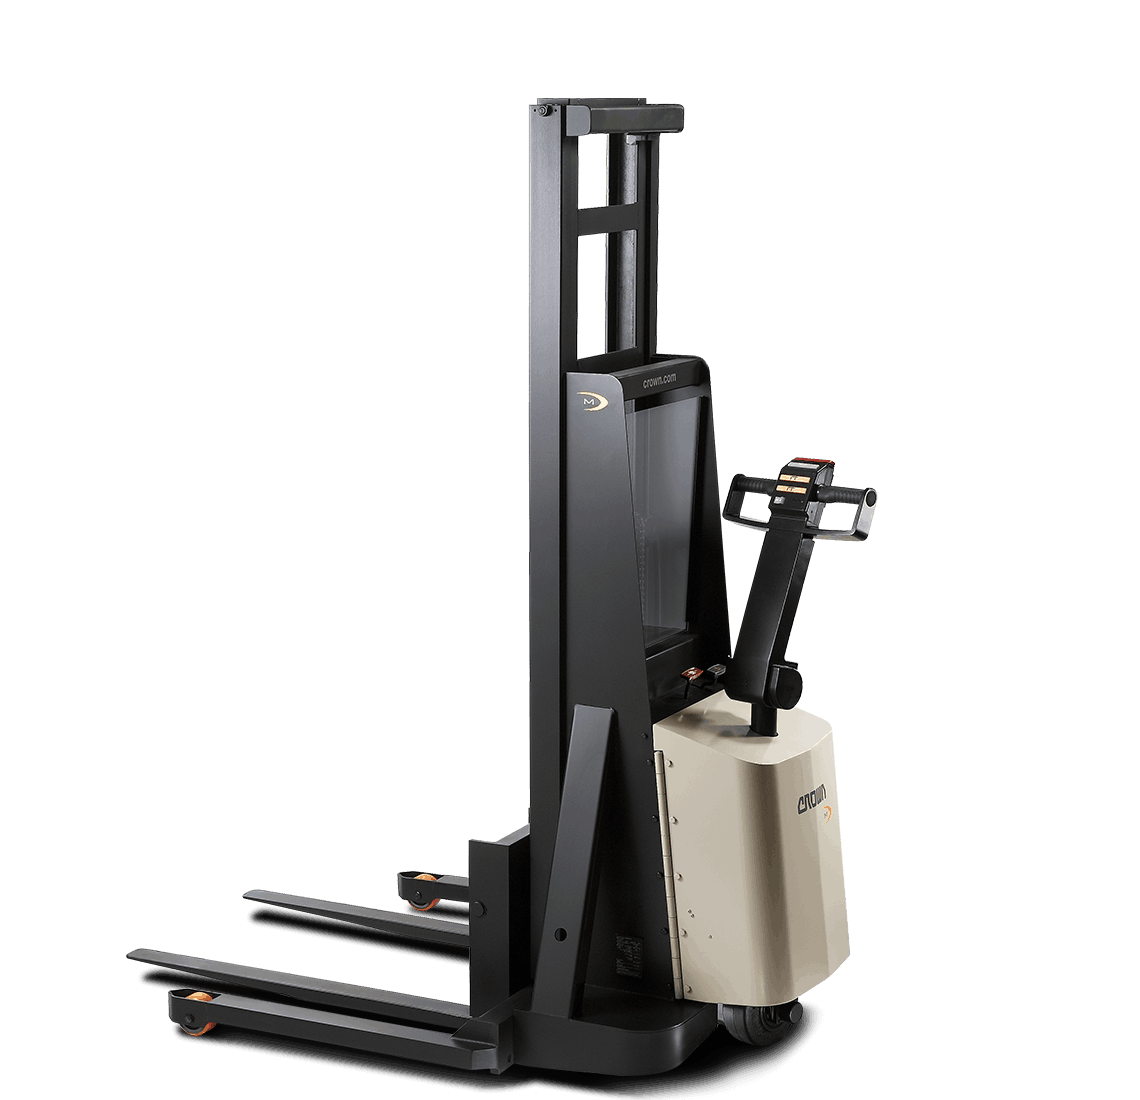 hight resolution of crown 20 mt forklift service manual download pdf